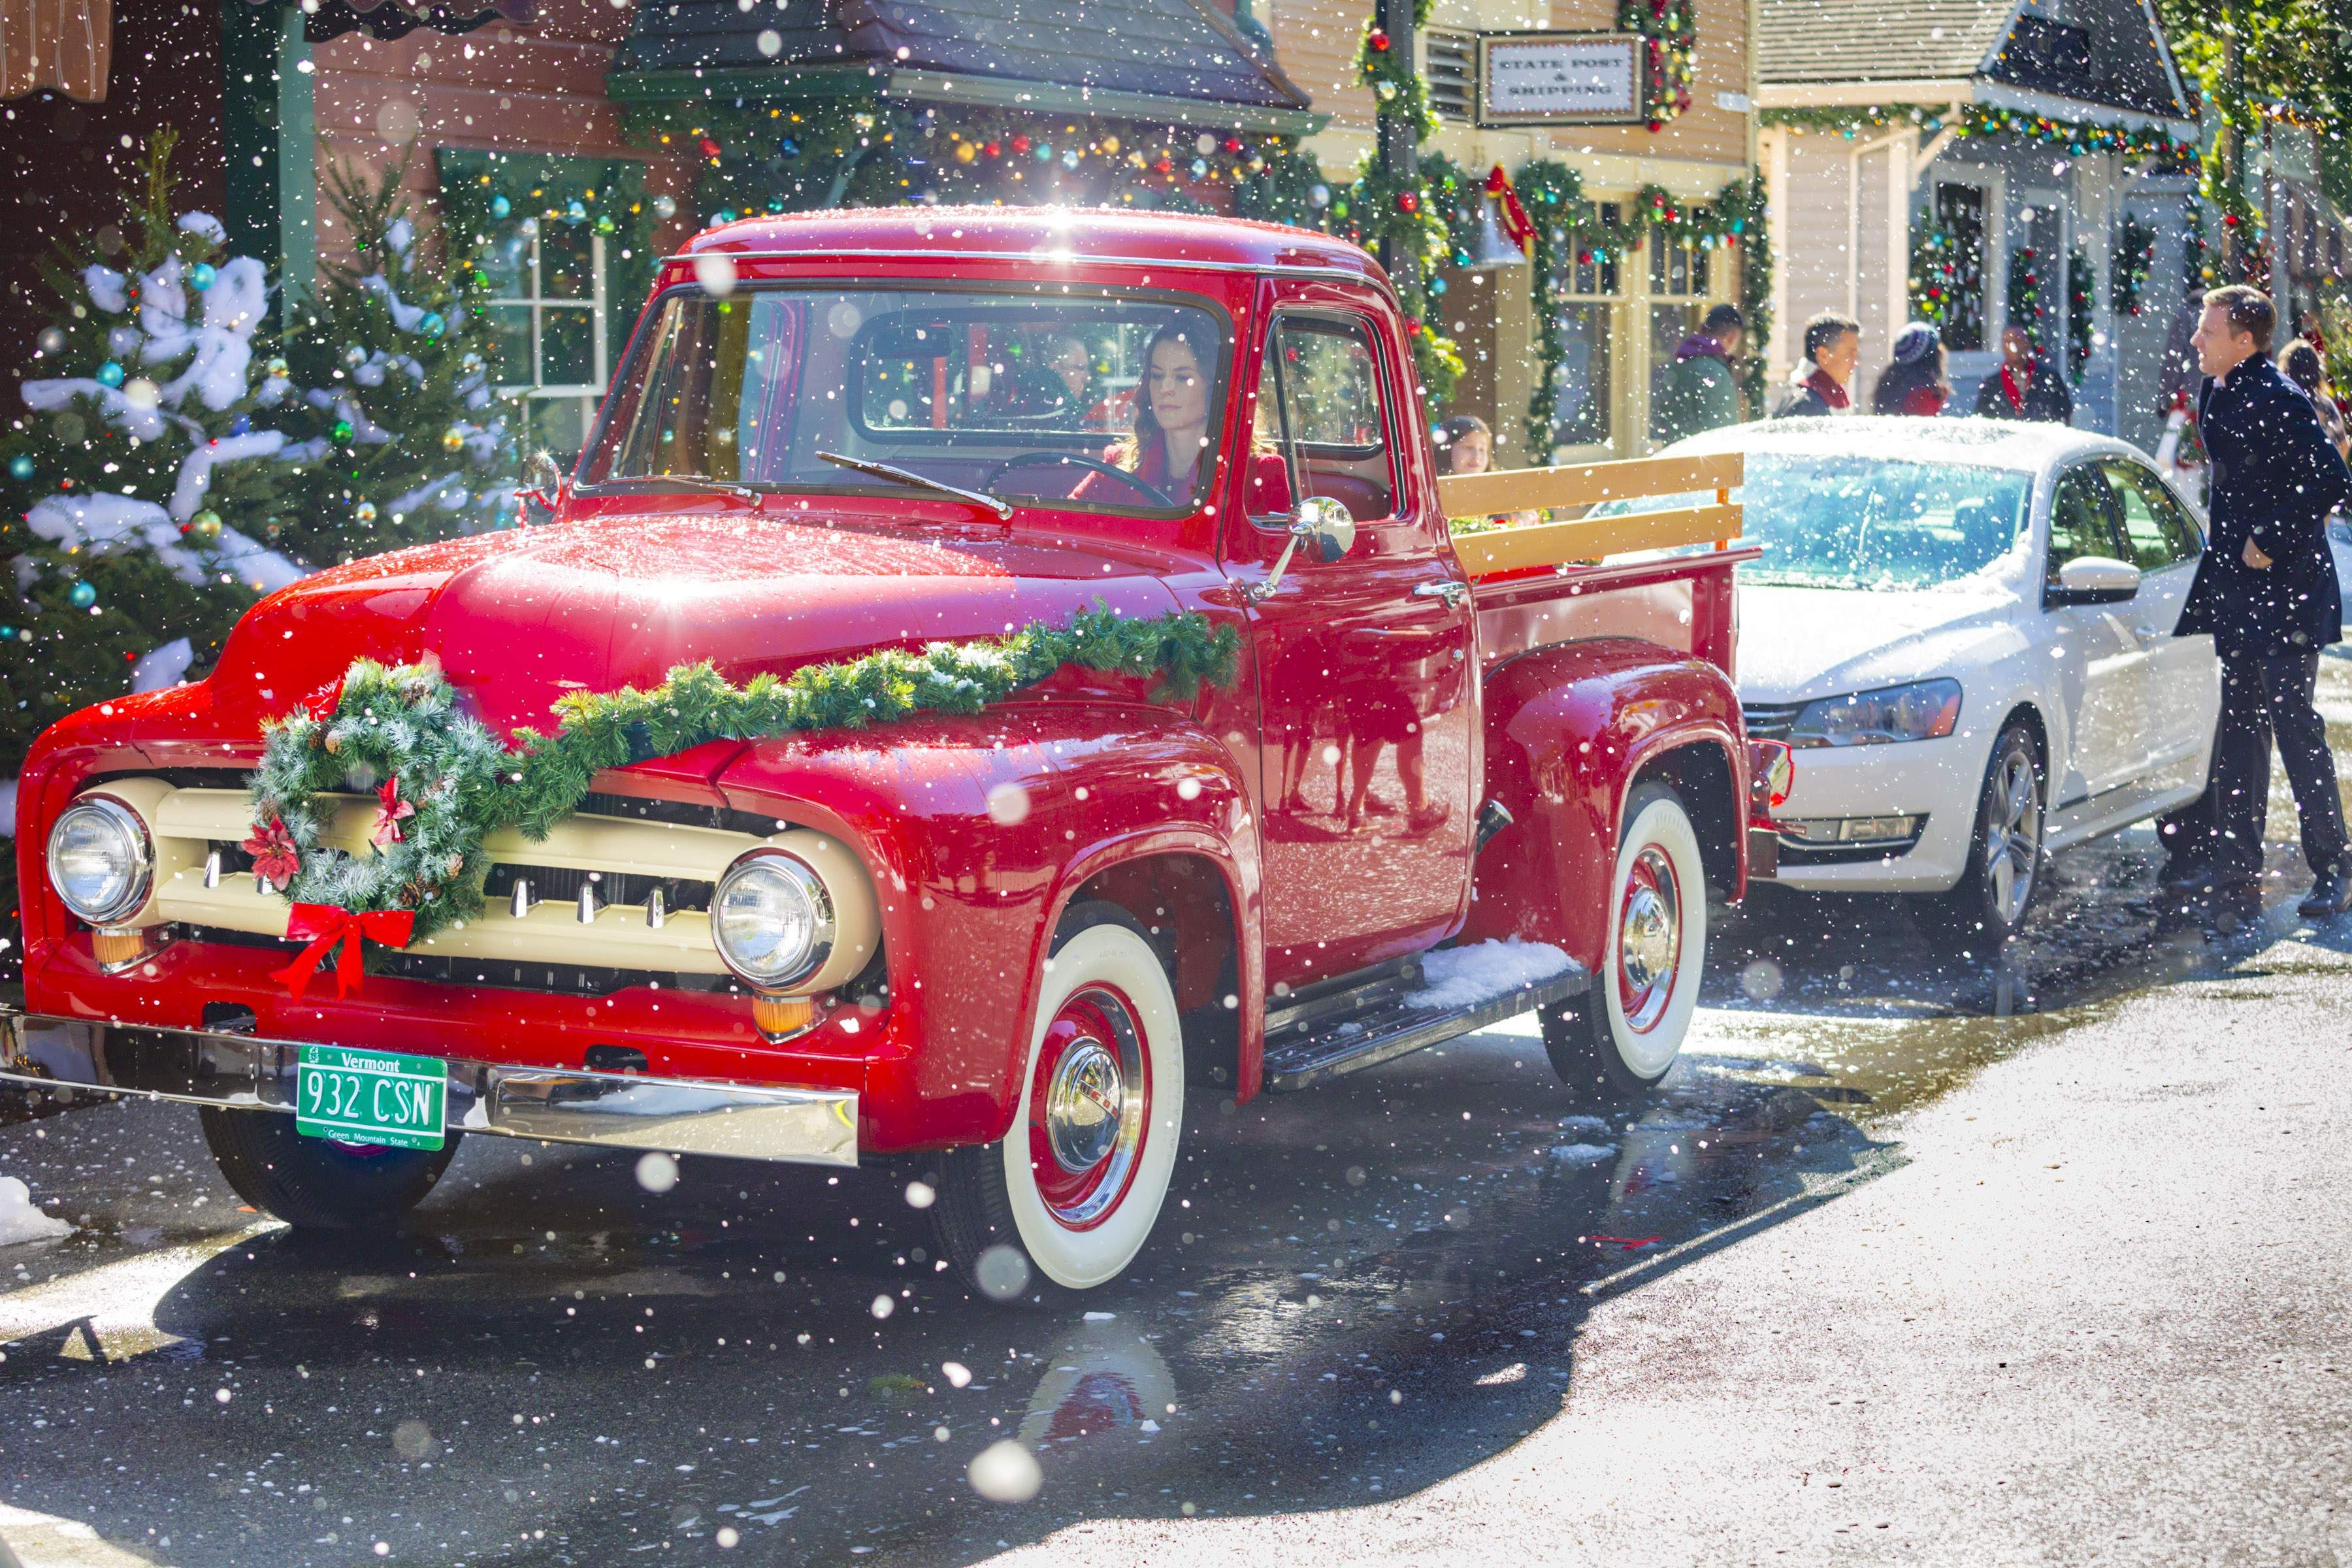 Christmas In Evergreen 2020 Cast hallmark evergreen truck | Hallmark's 'Christmas in Evergreen